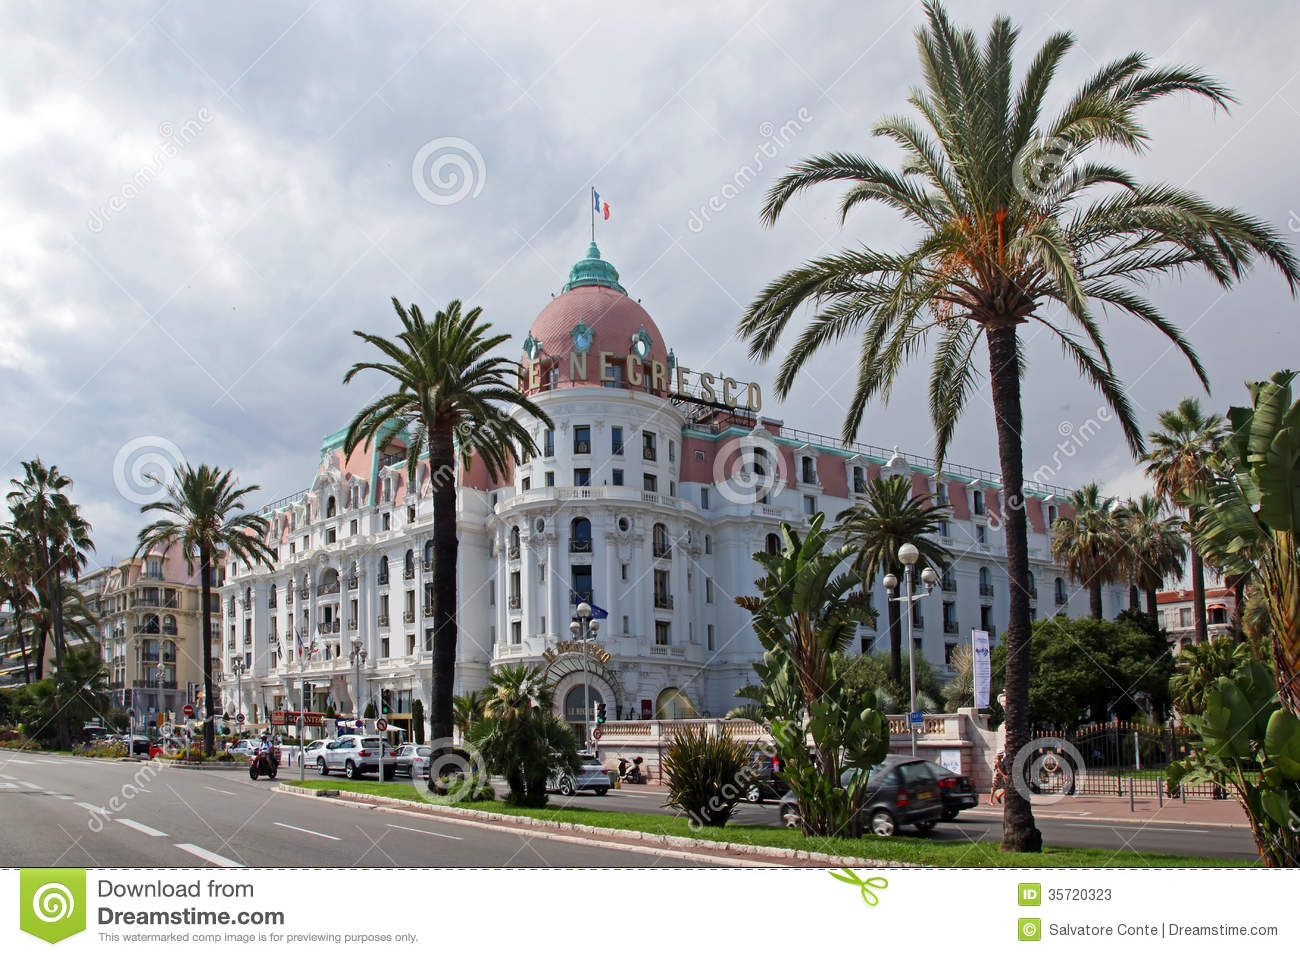 Luxury hotel negresco editorial stock photo image 35720323 for Luxury hotels in nice